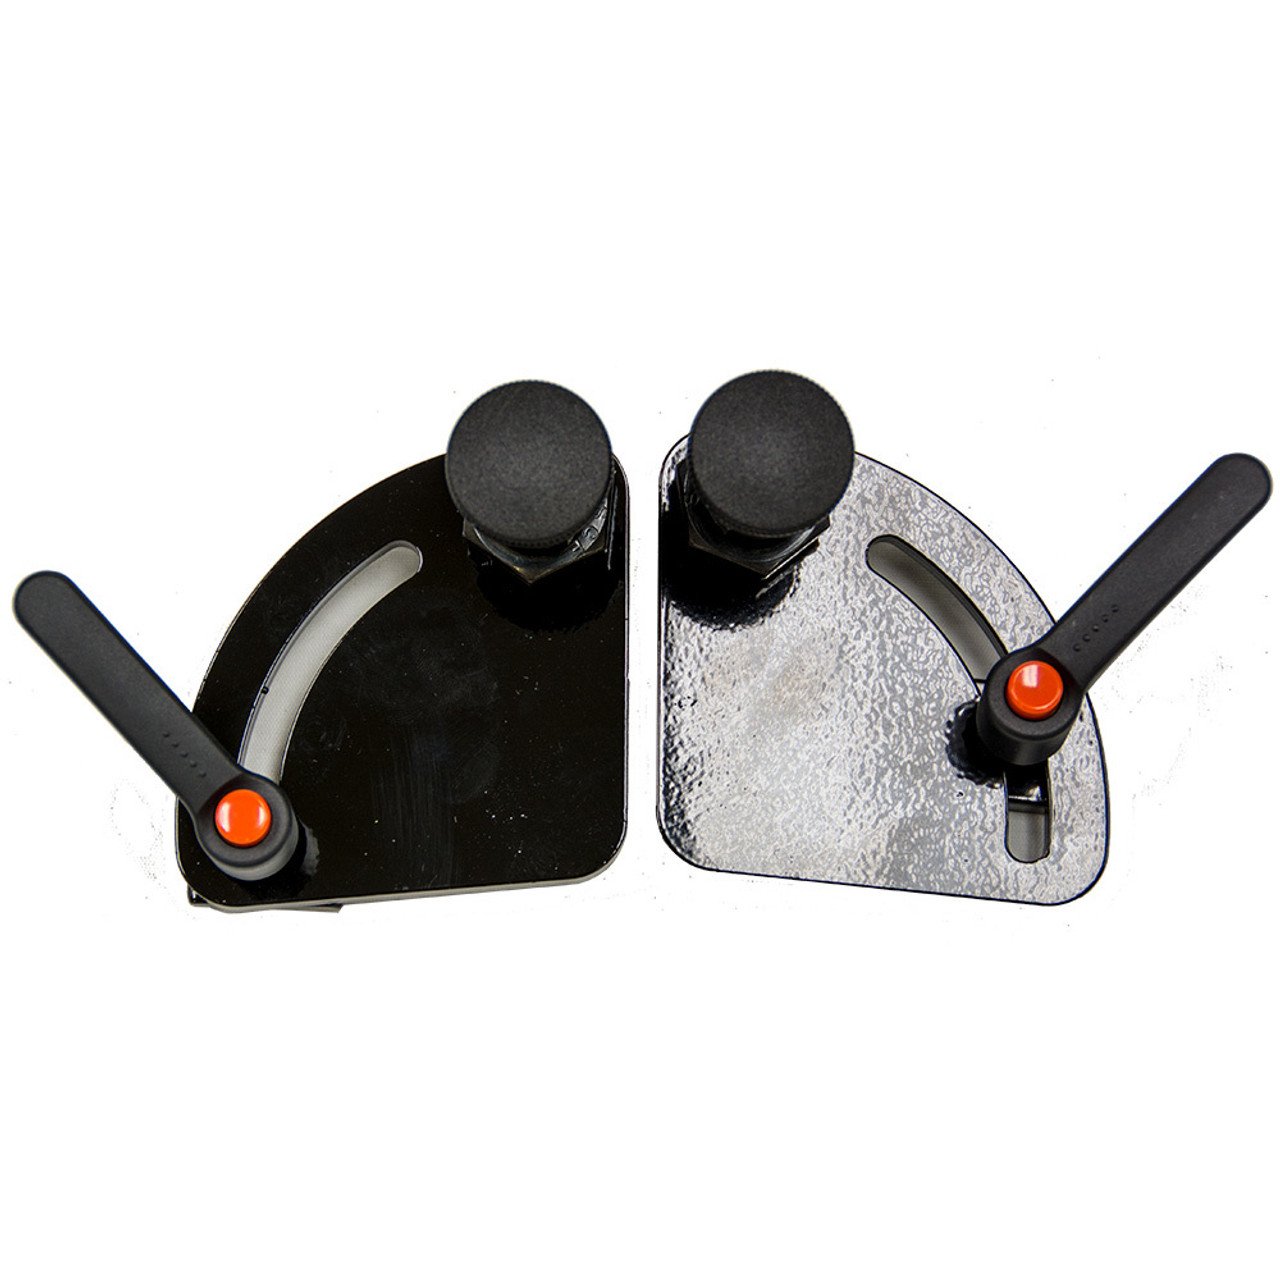 Set of (2) Quick Release Clamping Units